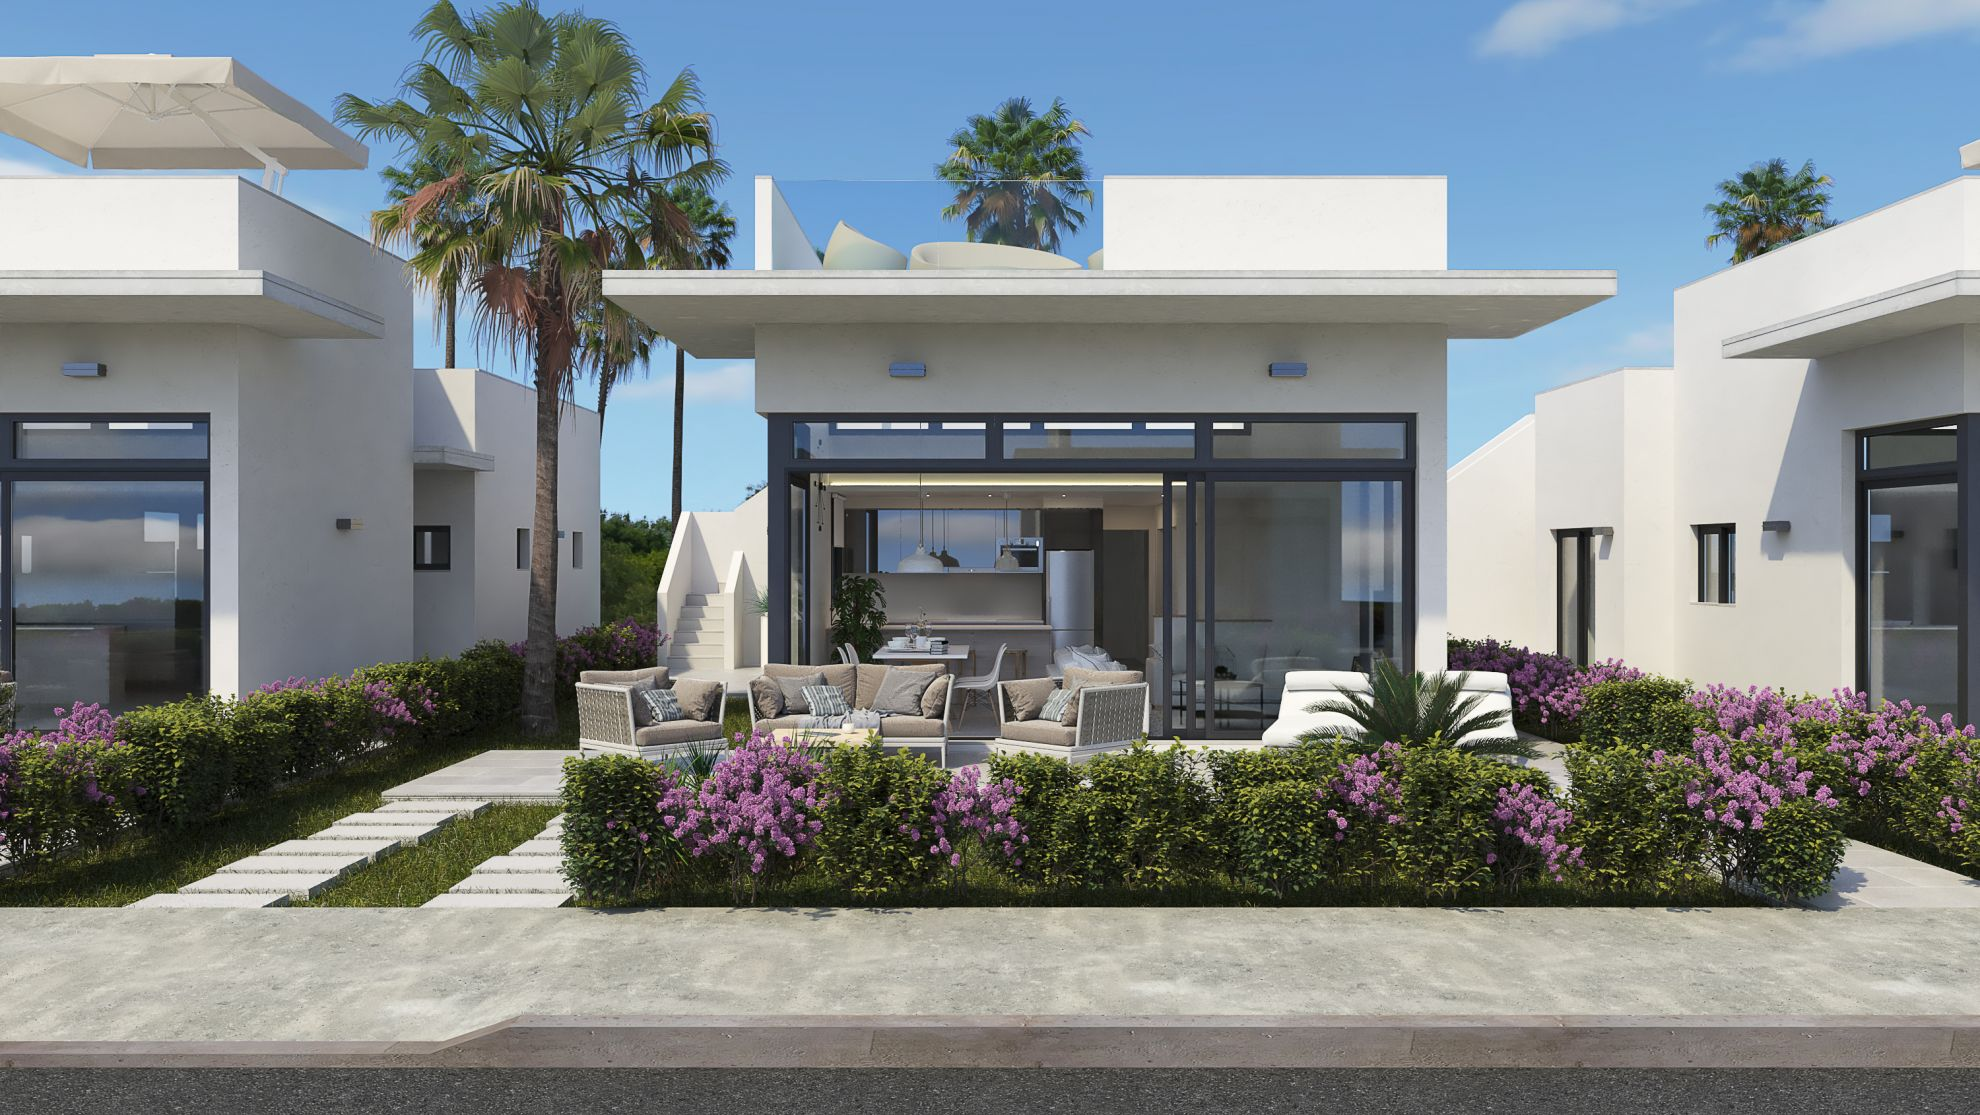 Villas in the Condado de Alhama 1